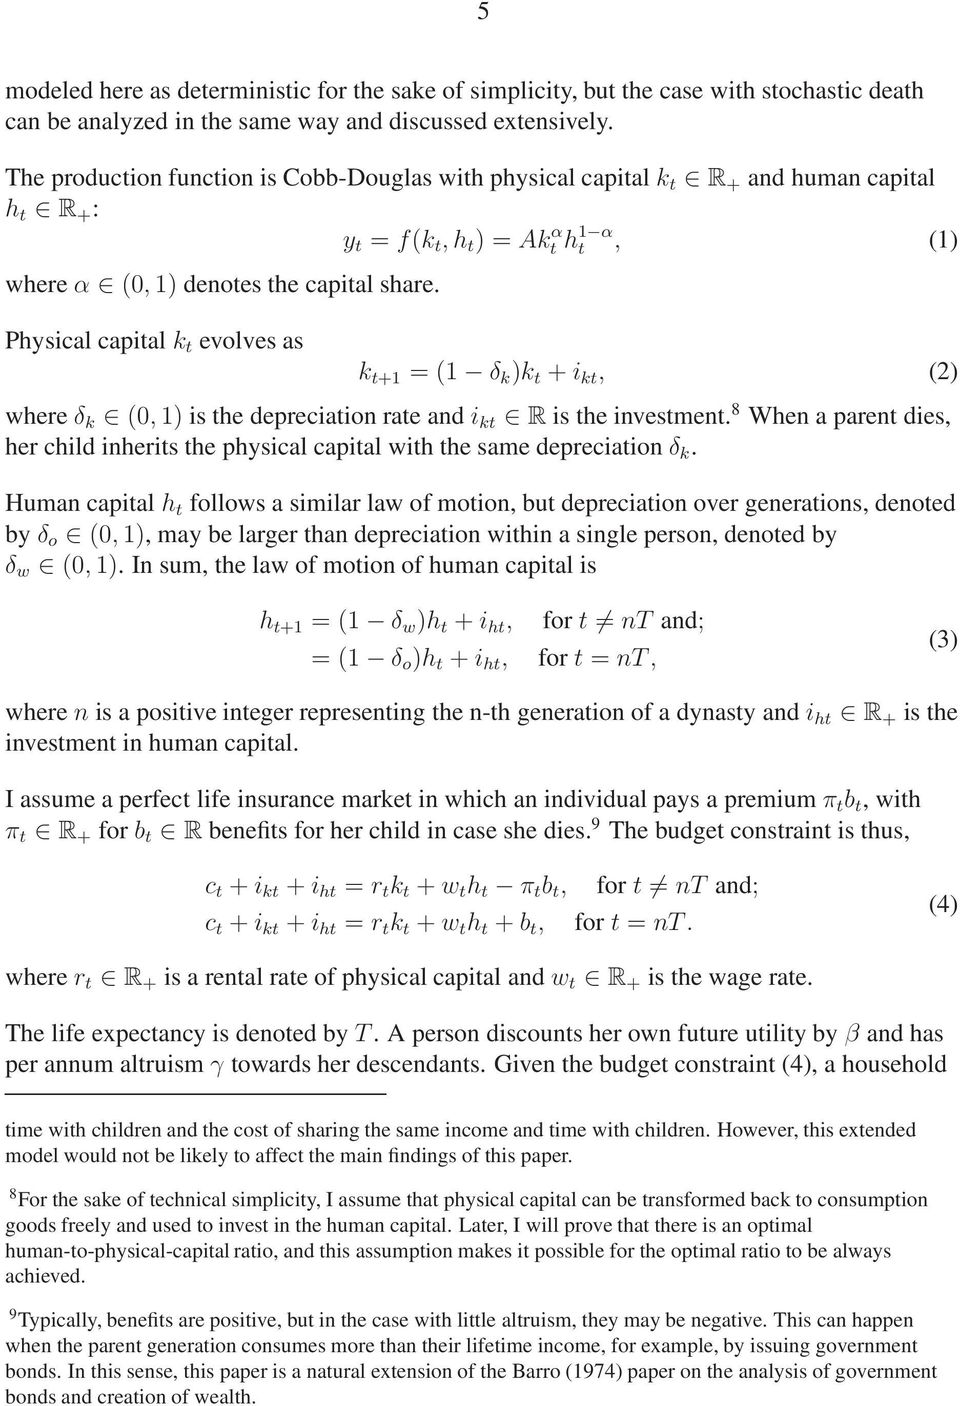 Physical capital k t evolves as k t+1 = (1 δ k )k t + i kt, (2) where δ k (0, 1) is the depreciation rate and i kt R is the investment.